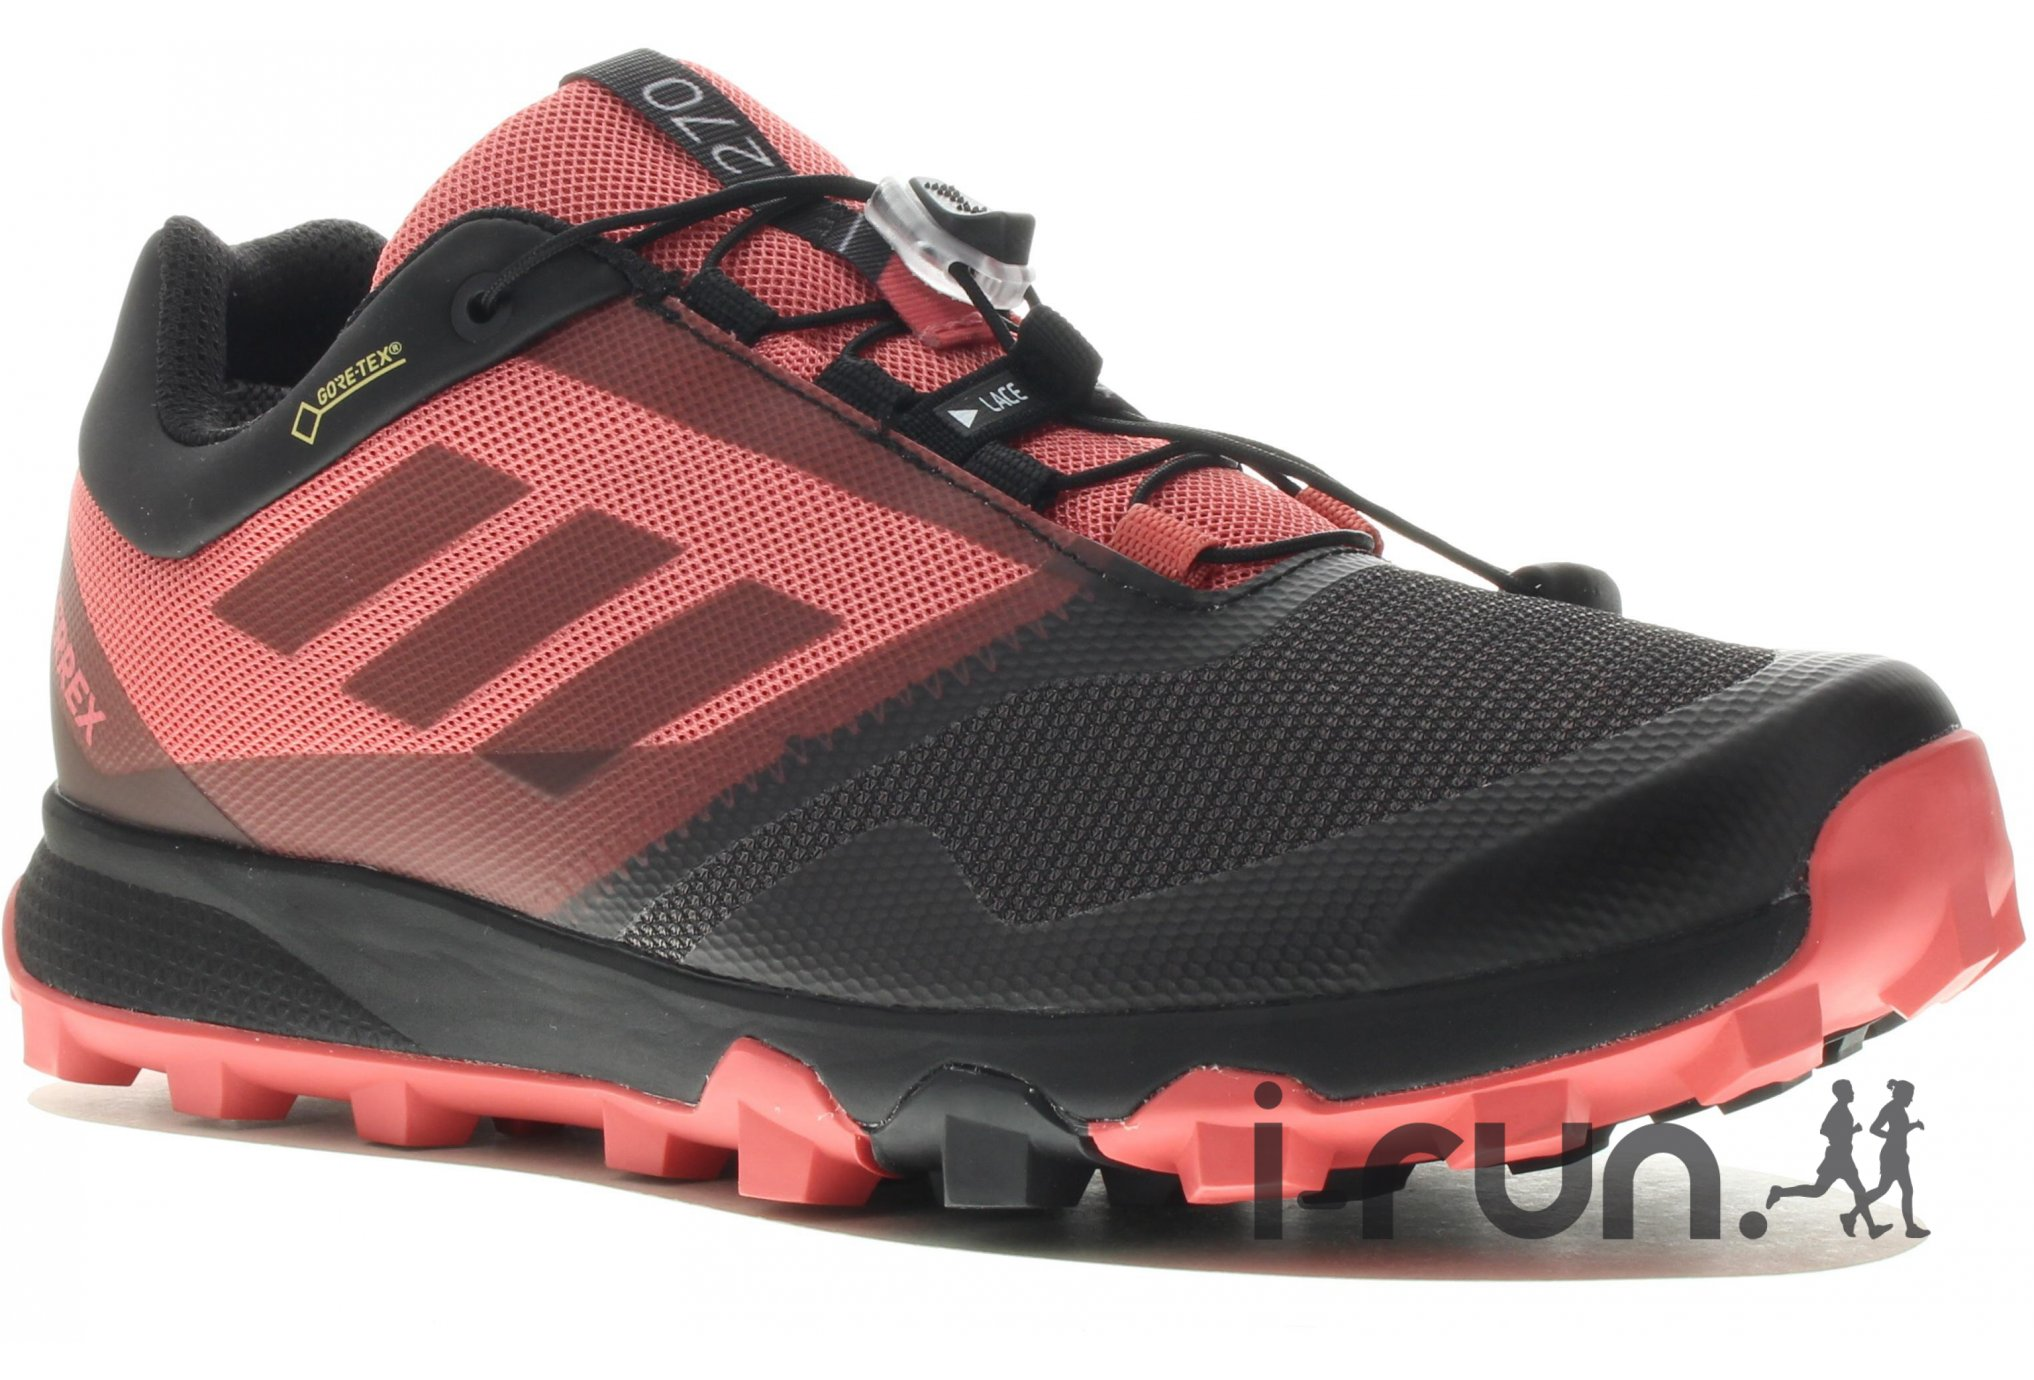 29c9eb6ba4e Trail Session - adidas Terrex TrailMaker Gore-Tex W Chaussures ...